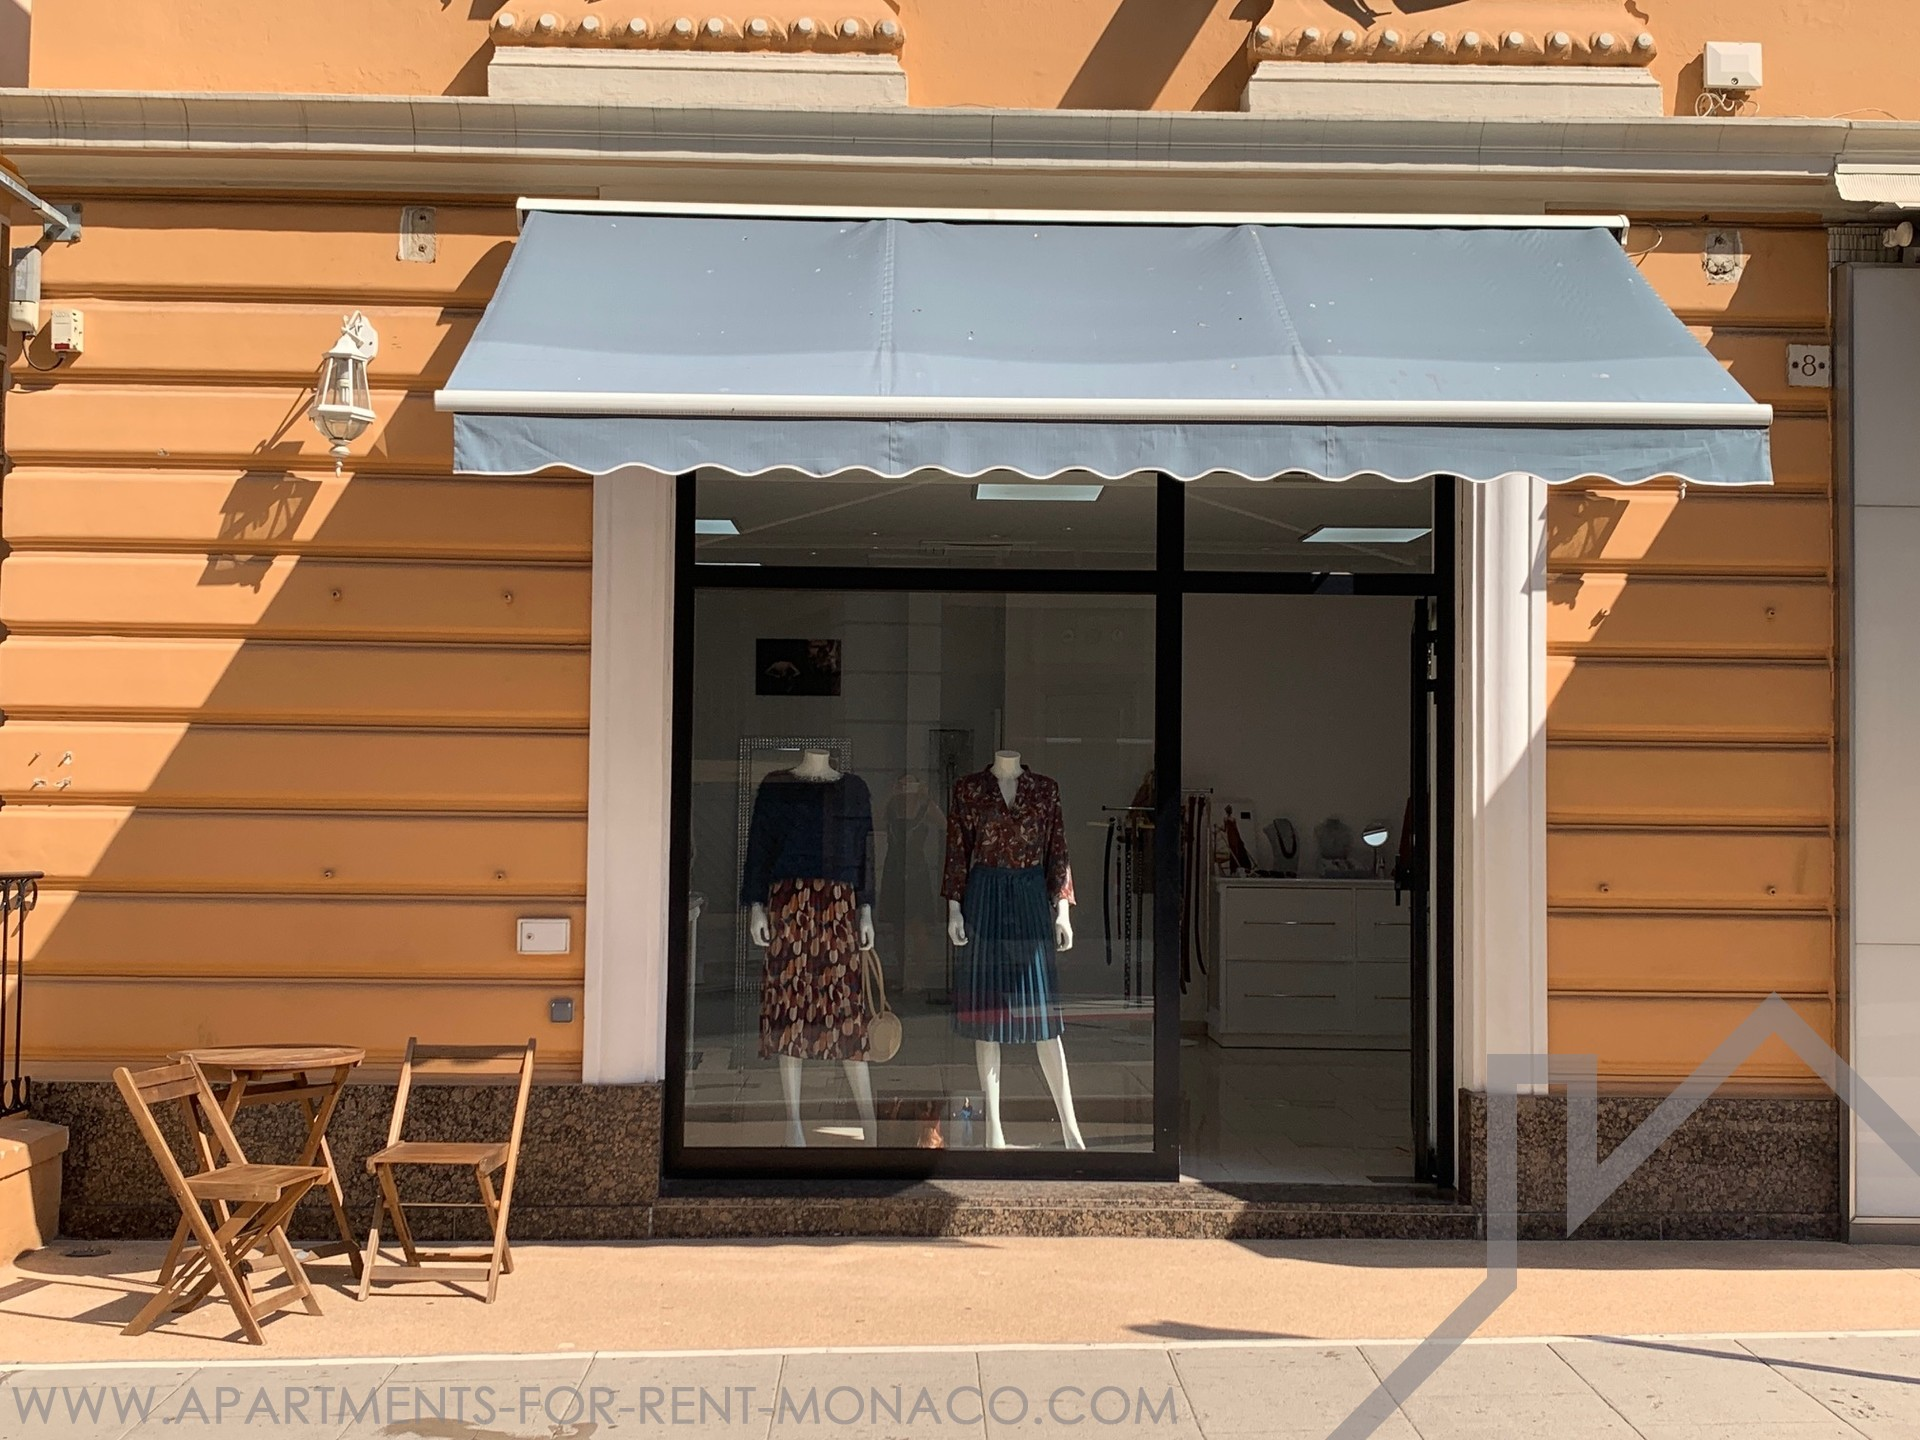 Monte Carlo: commercial premises ideally located with beautiful shop window - Apartments for rent in Monaco